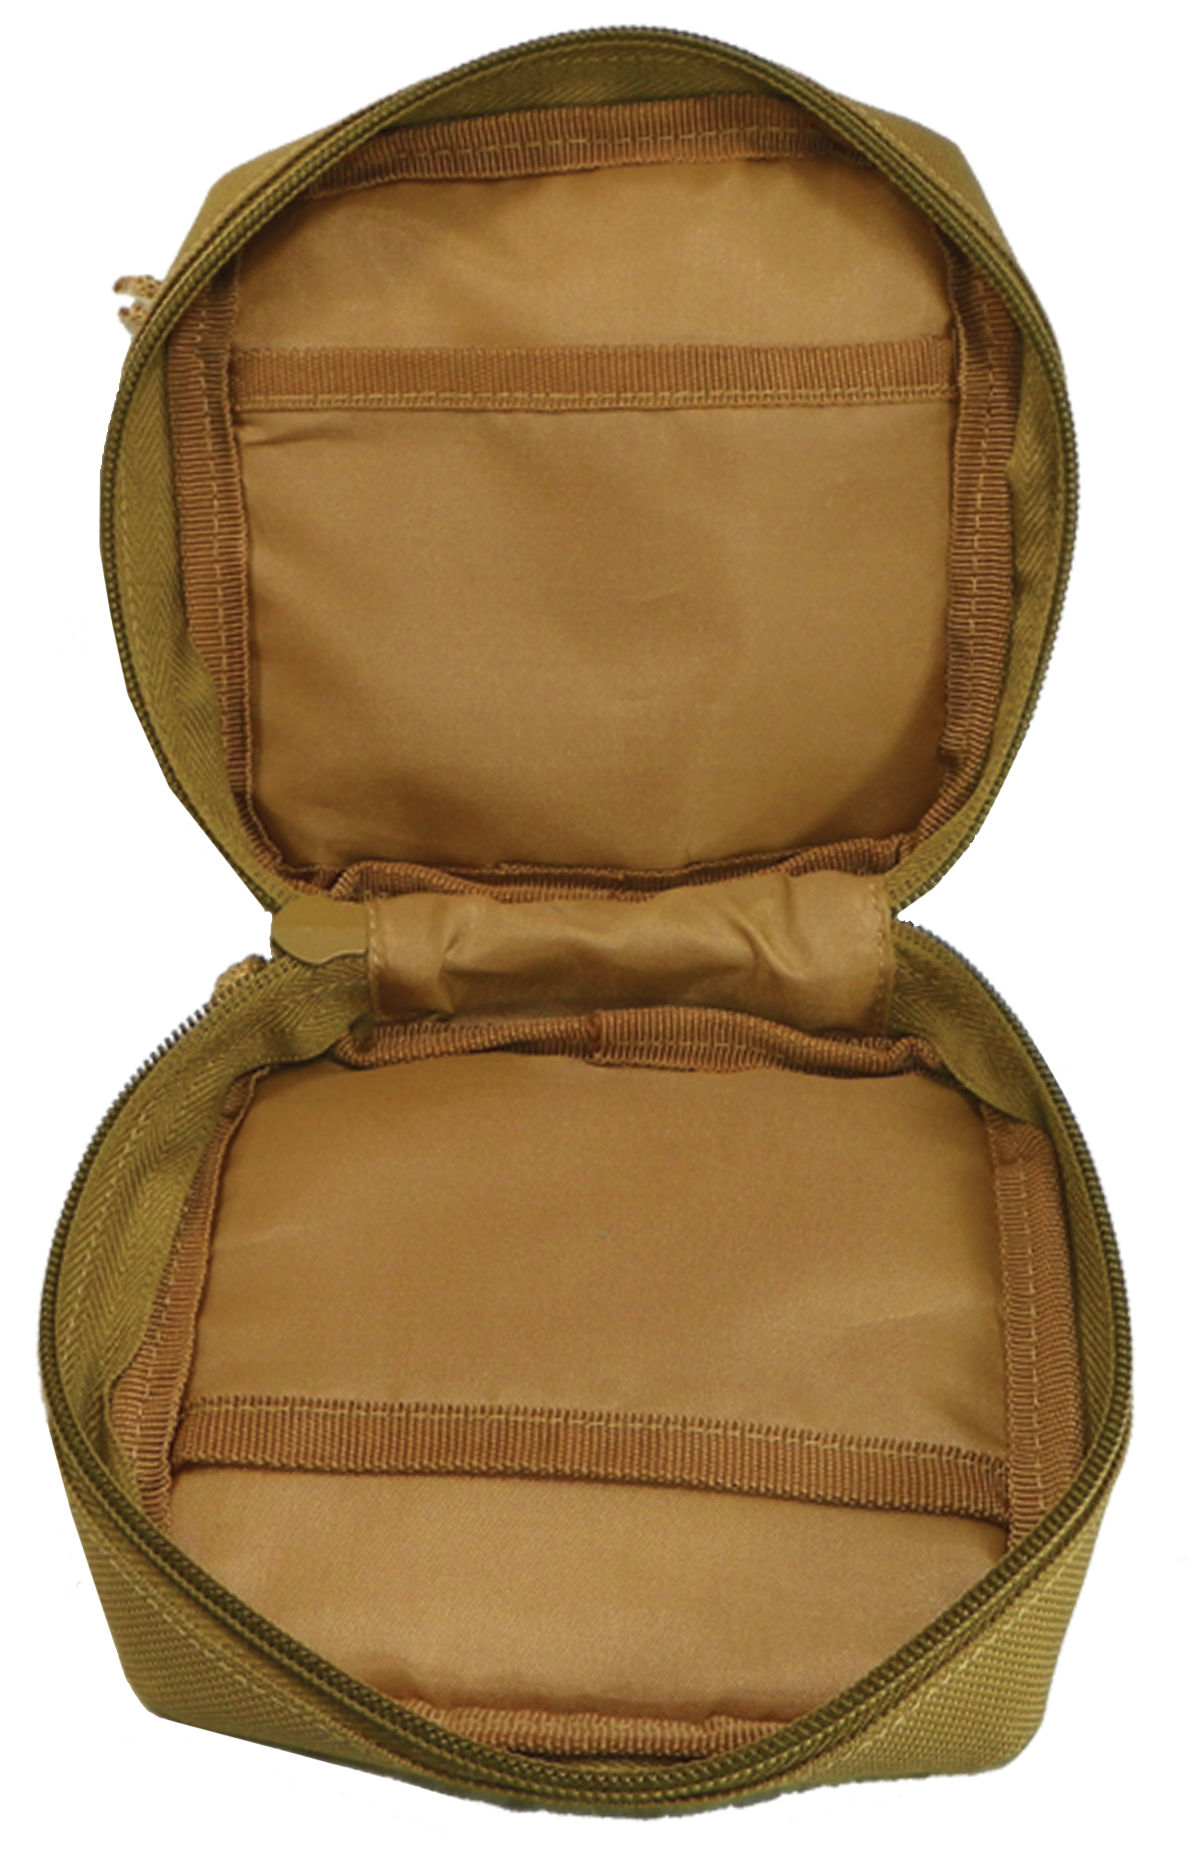 American Buffalo AB073T Universal MOLLE Pouch Coyote Tan 1000D Nylon